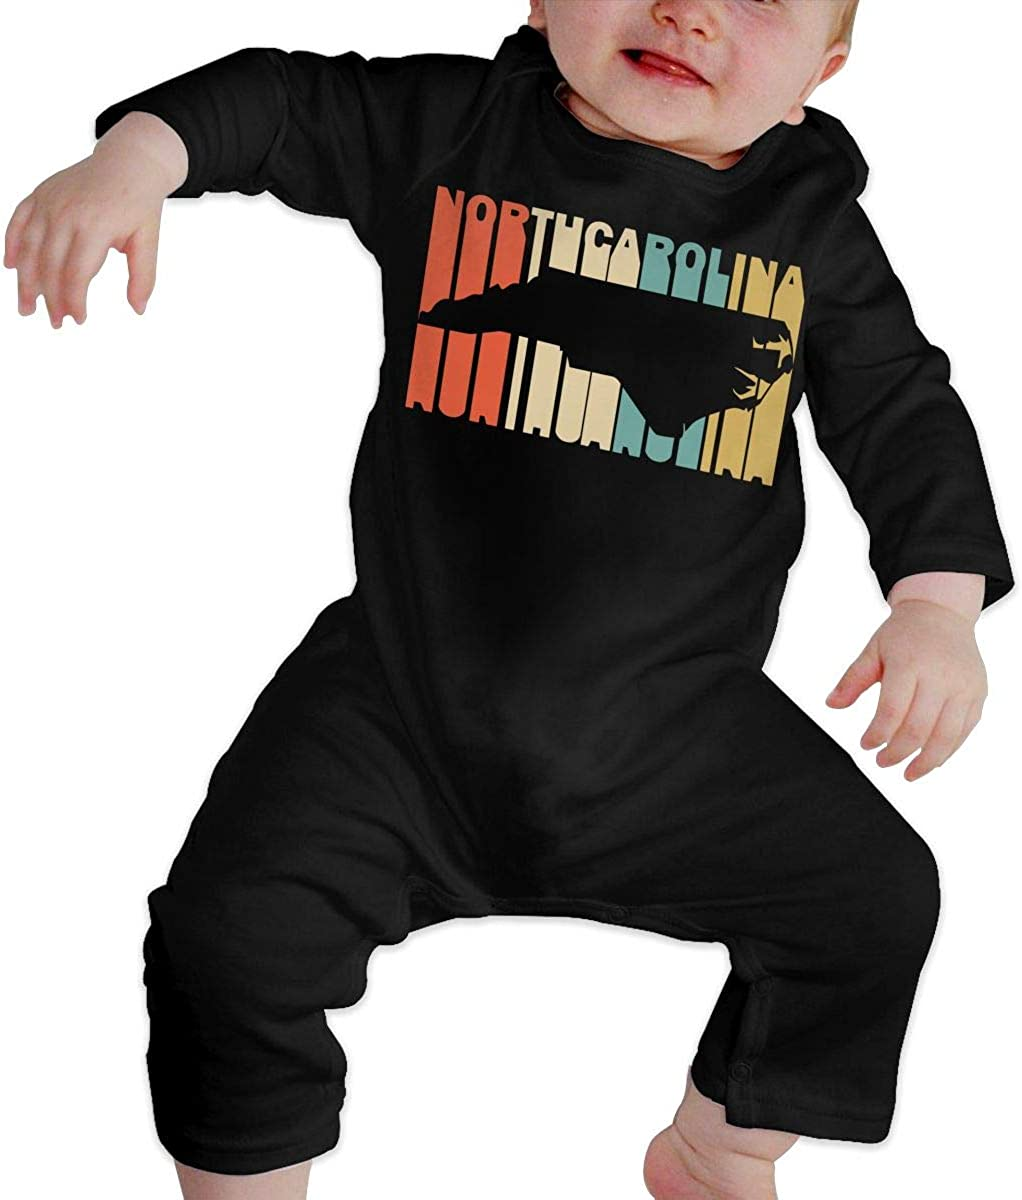 Retro Style North Carolina Silhouette Printed Baby Jumpsuit Long Sleeve Outfits Black